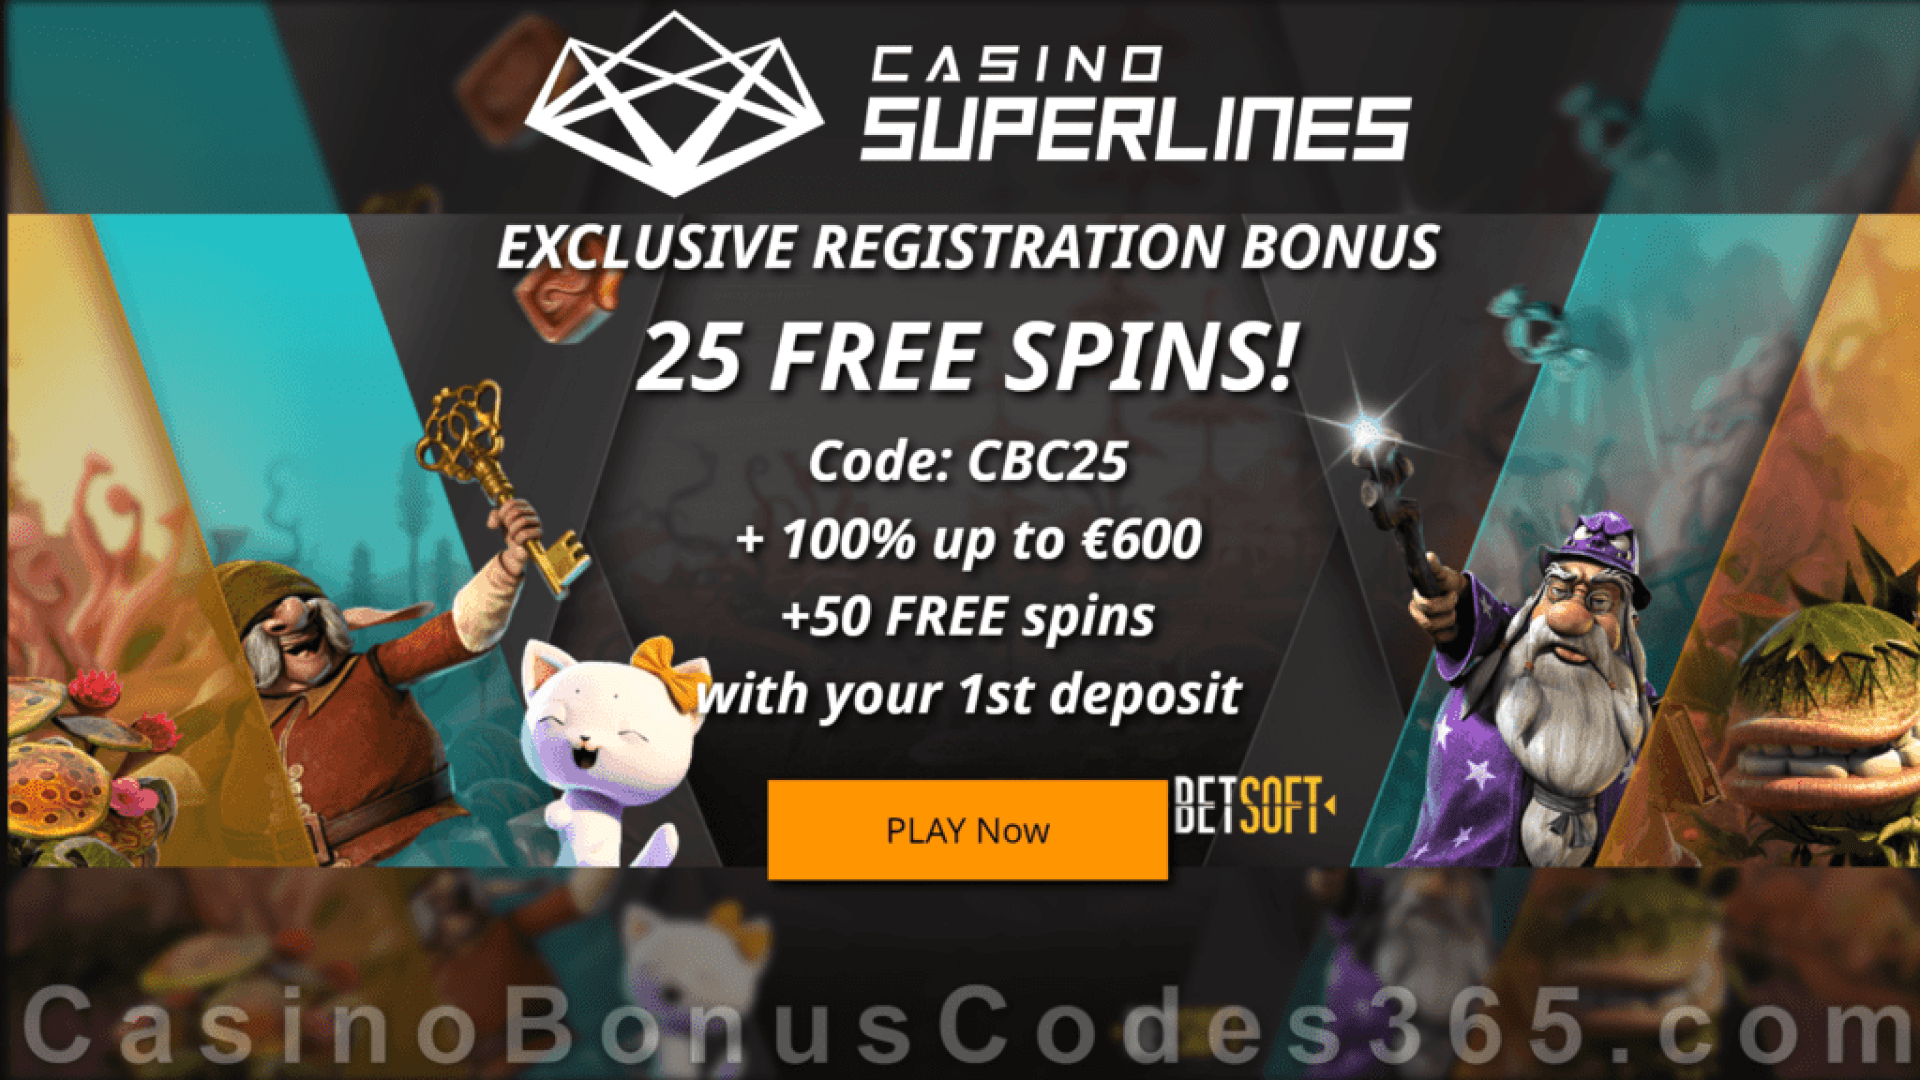 Casino Superlines Exclusive 25 FREE Spins No Deposit Welcome Deal